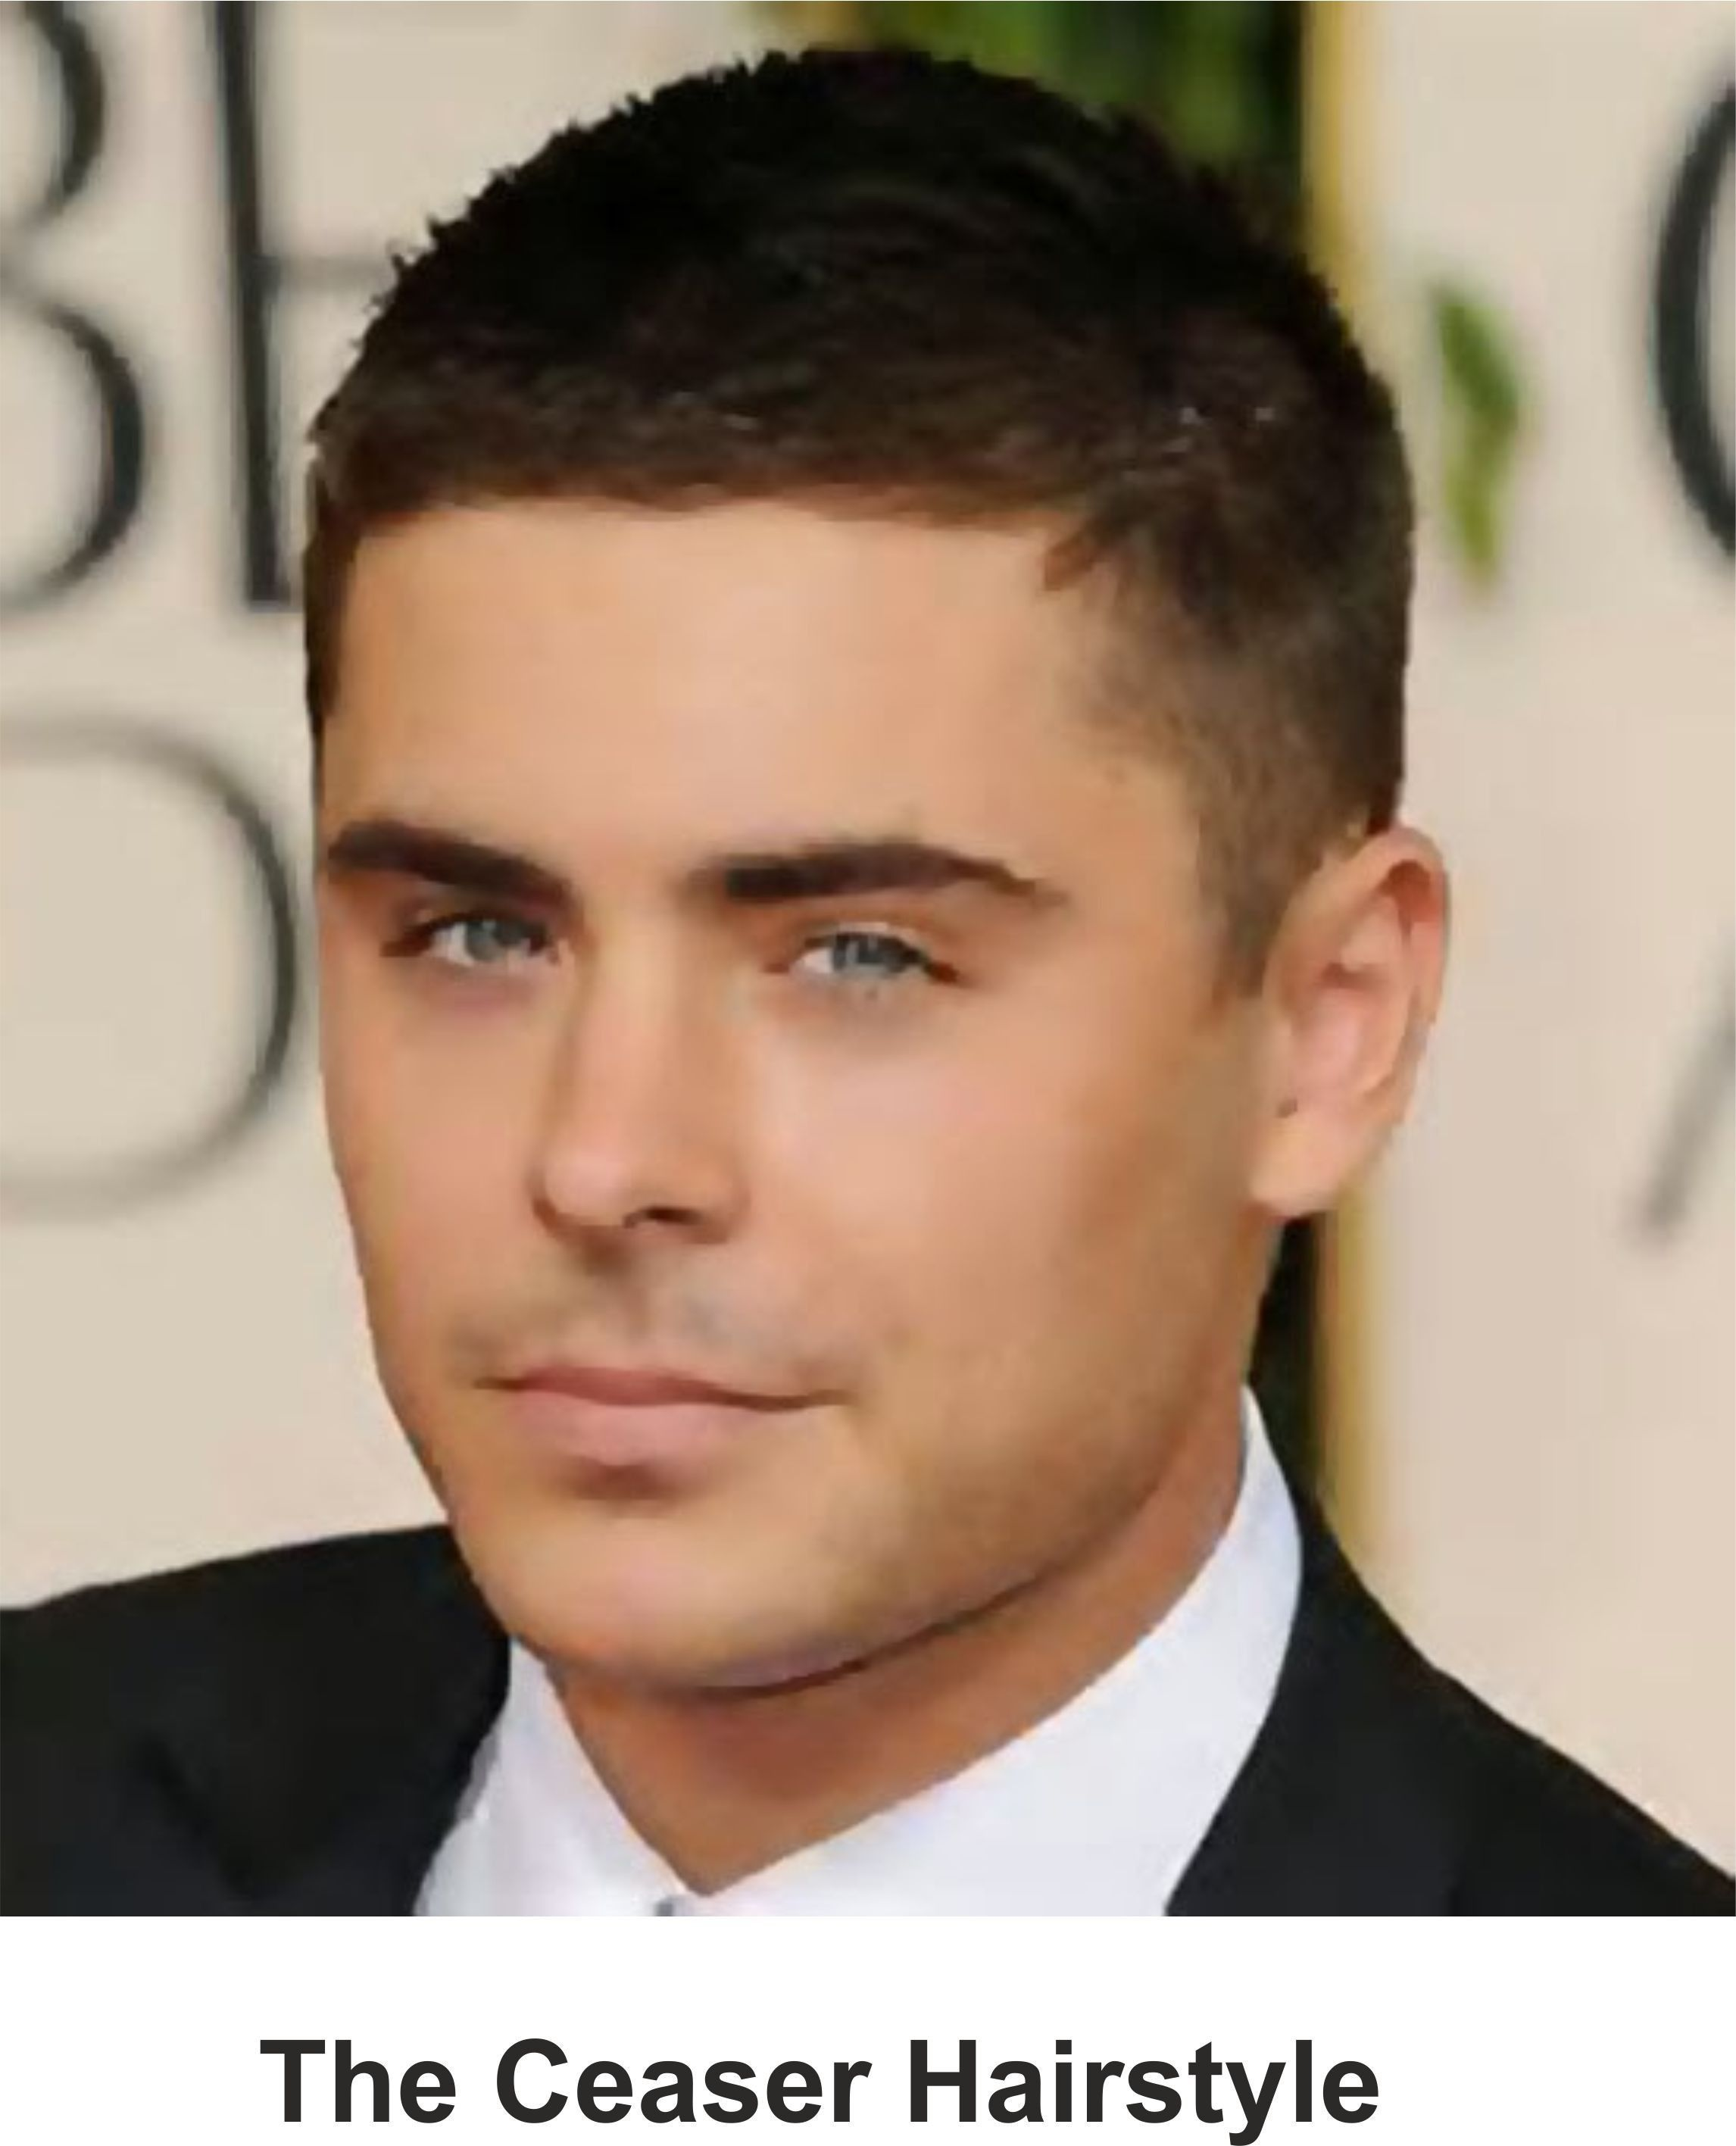 Hairstyles For Men Round Face Bun Hairstyles Hairstyle For Men Round Face Shape Stunning Round Face Haircuts Round Face Men Gentleman Haircut